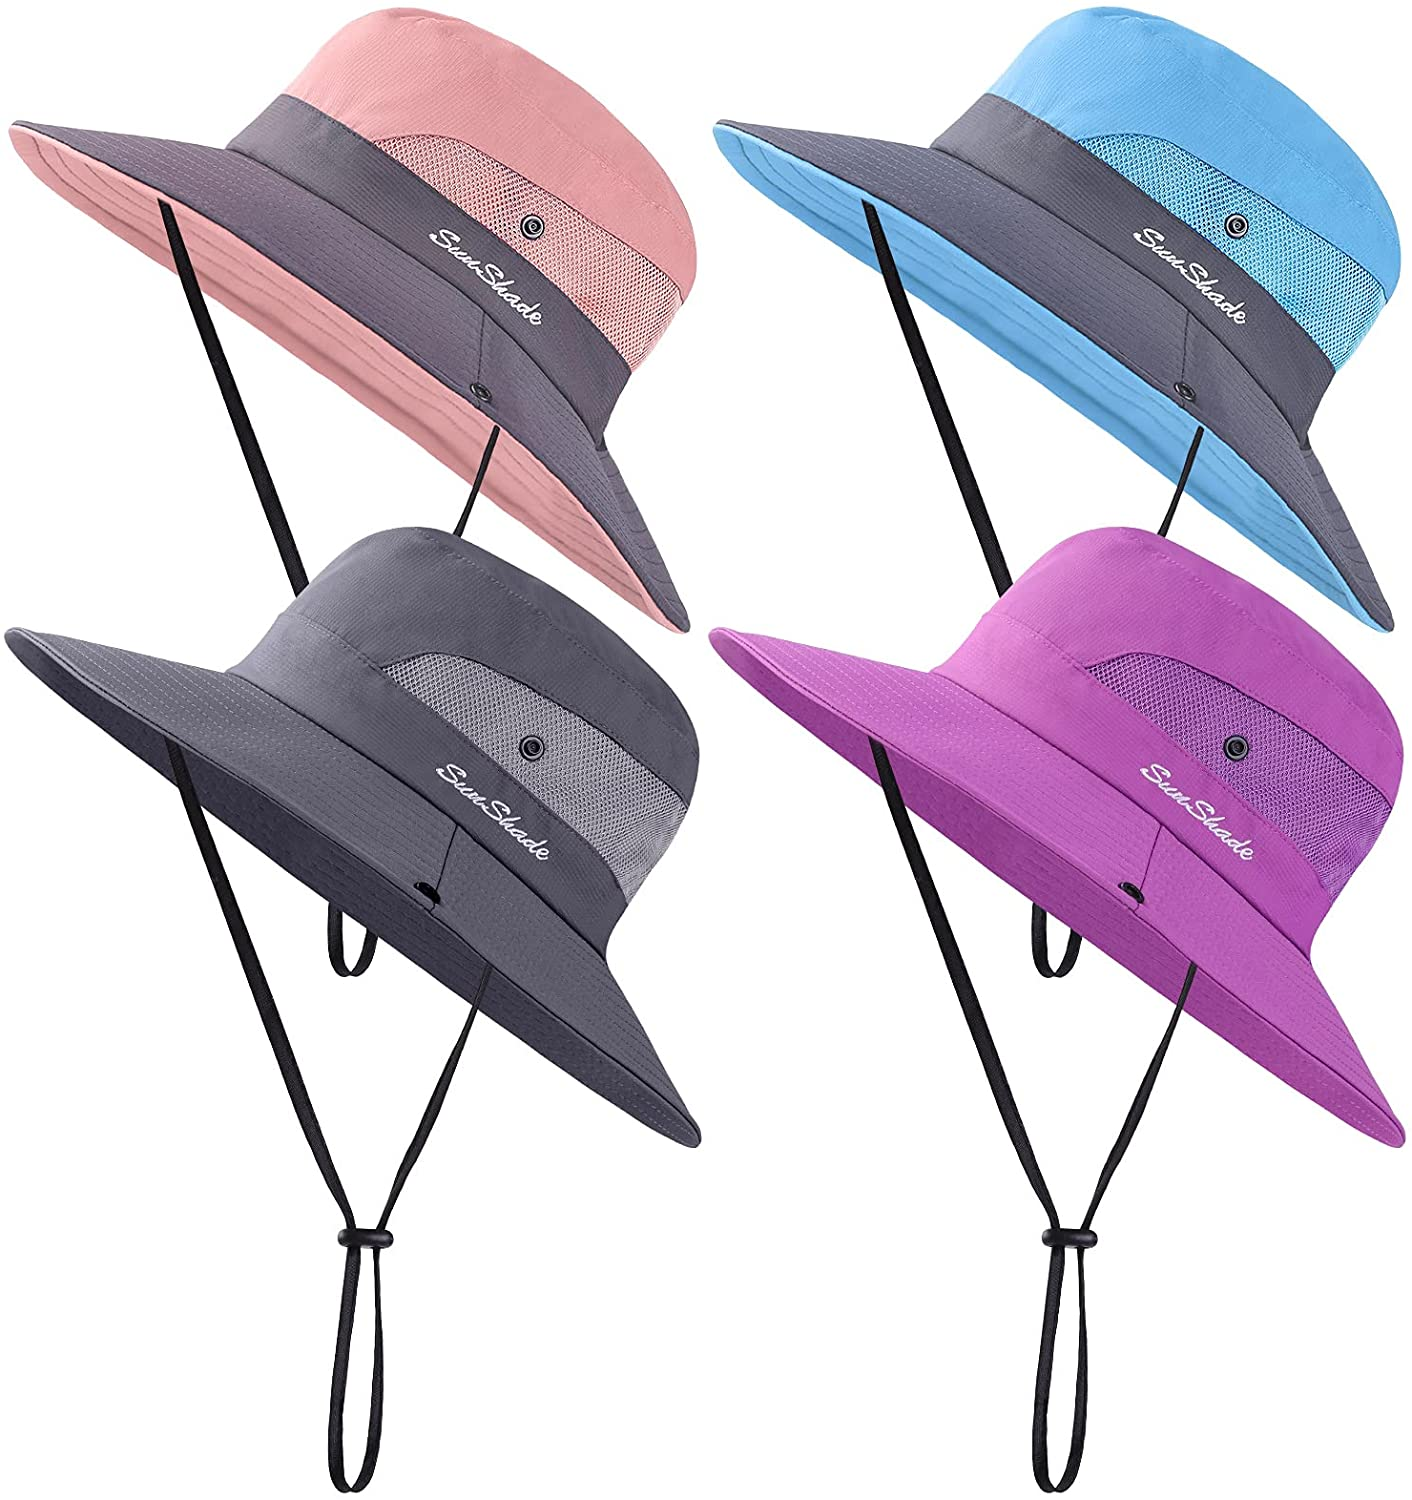 Cooraby 4 Pack UV Women Summer Sun Hat Ponytail Hole Cap Wide Brim Hat Beach Cap for Hiking and Fishing